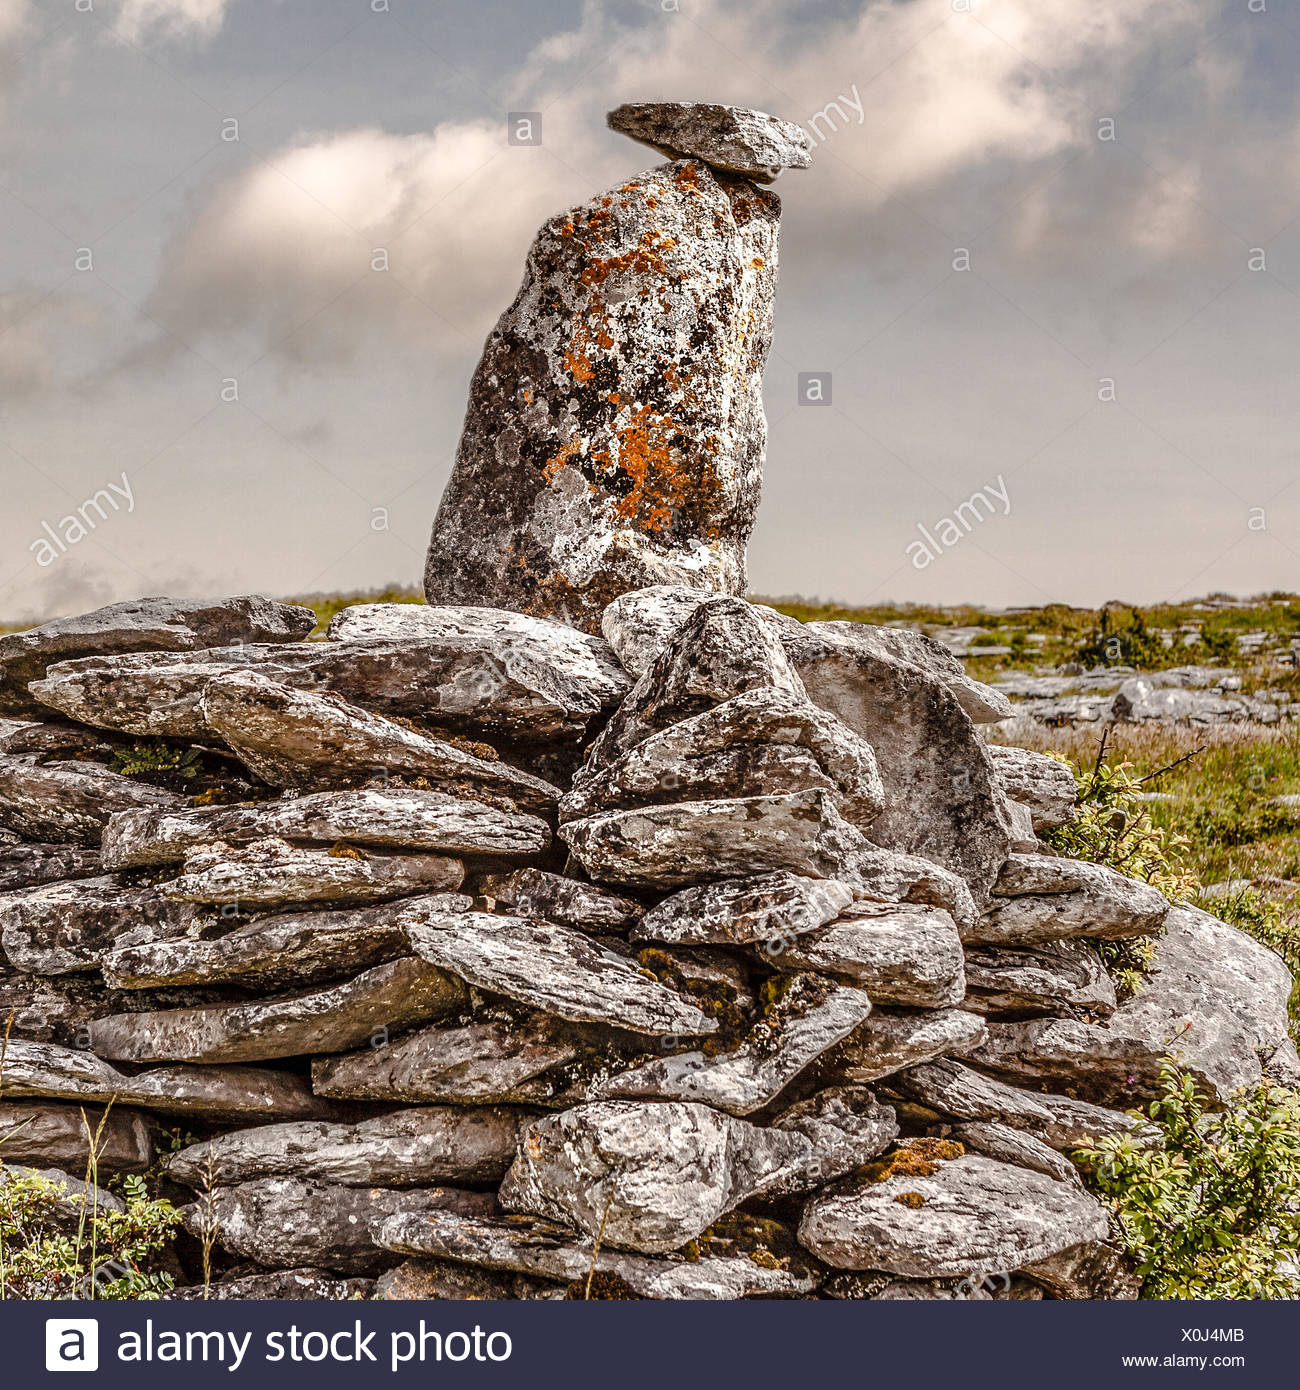 UK, Northern Ireland, Ulster, County Down, Newry, Burren, Two stones balanced on pile of rocks - Stock Image